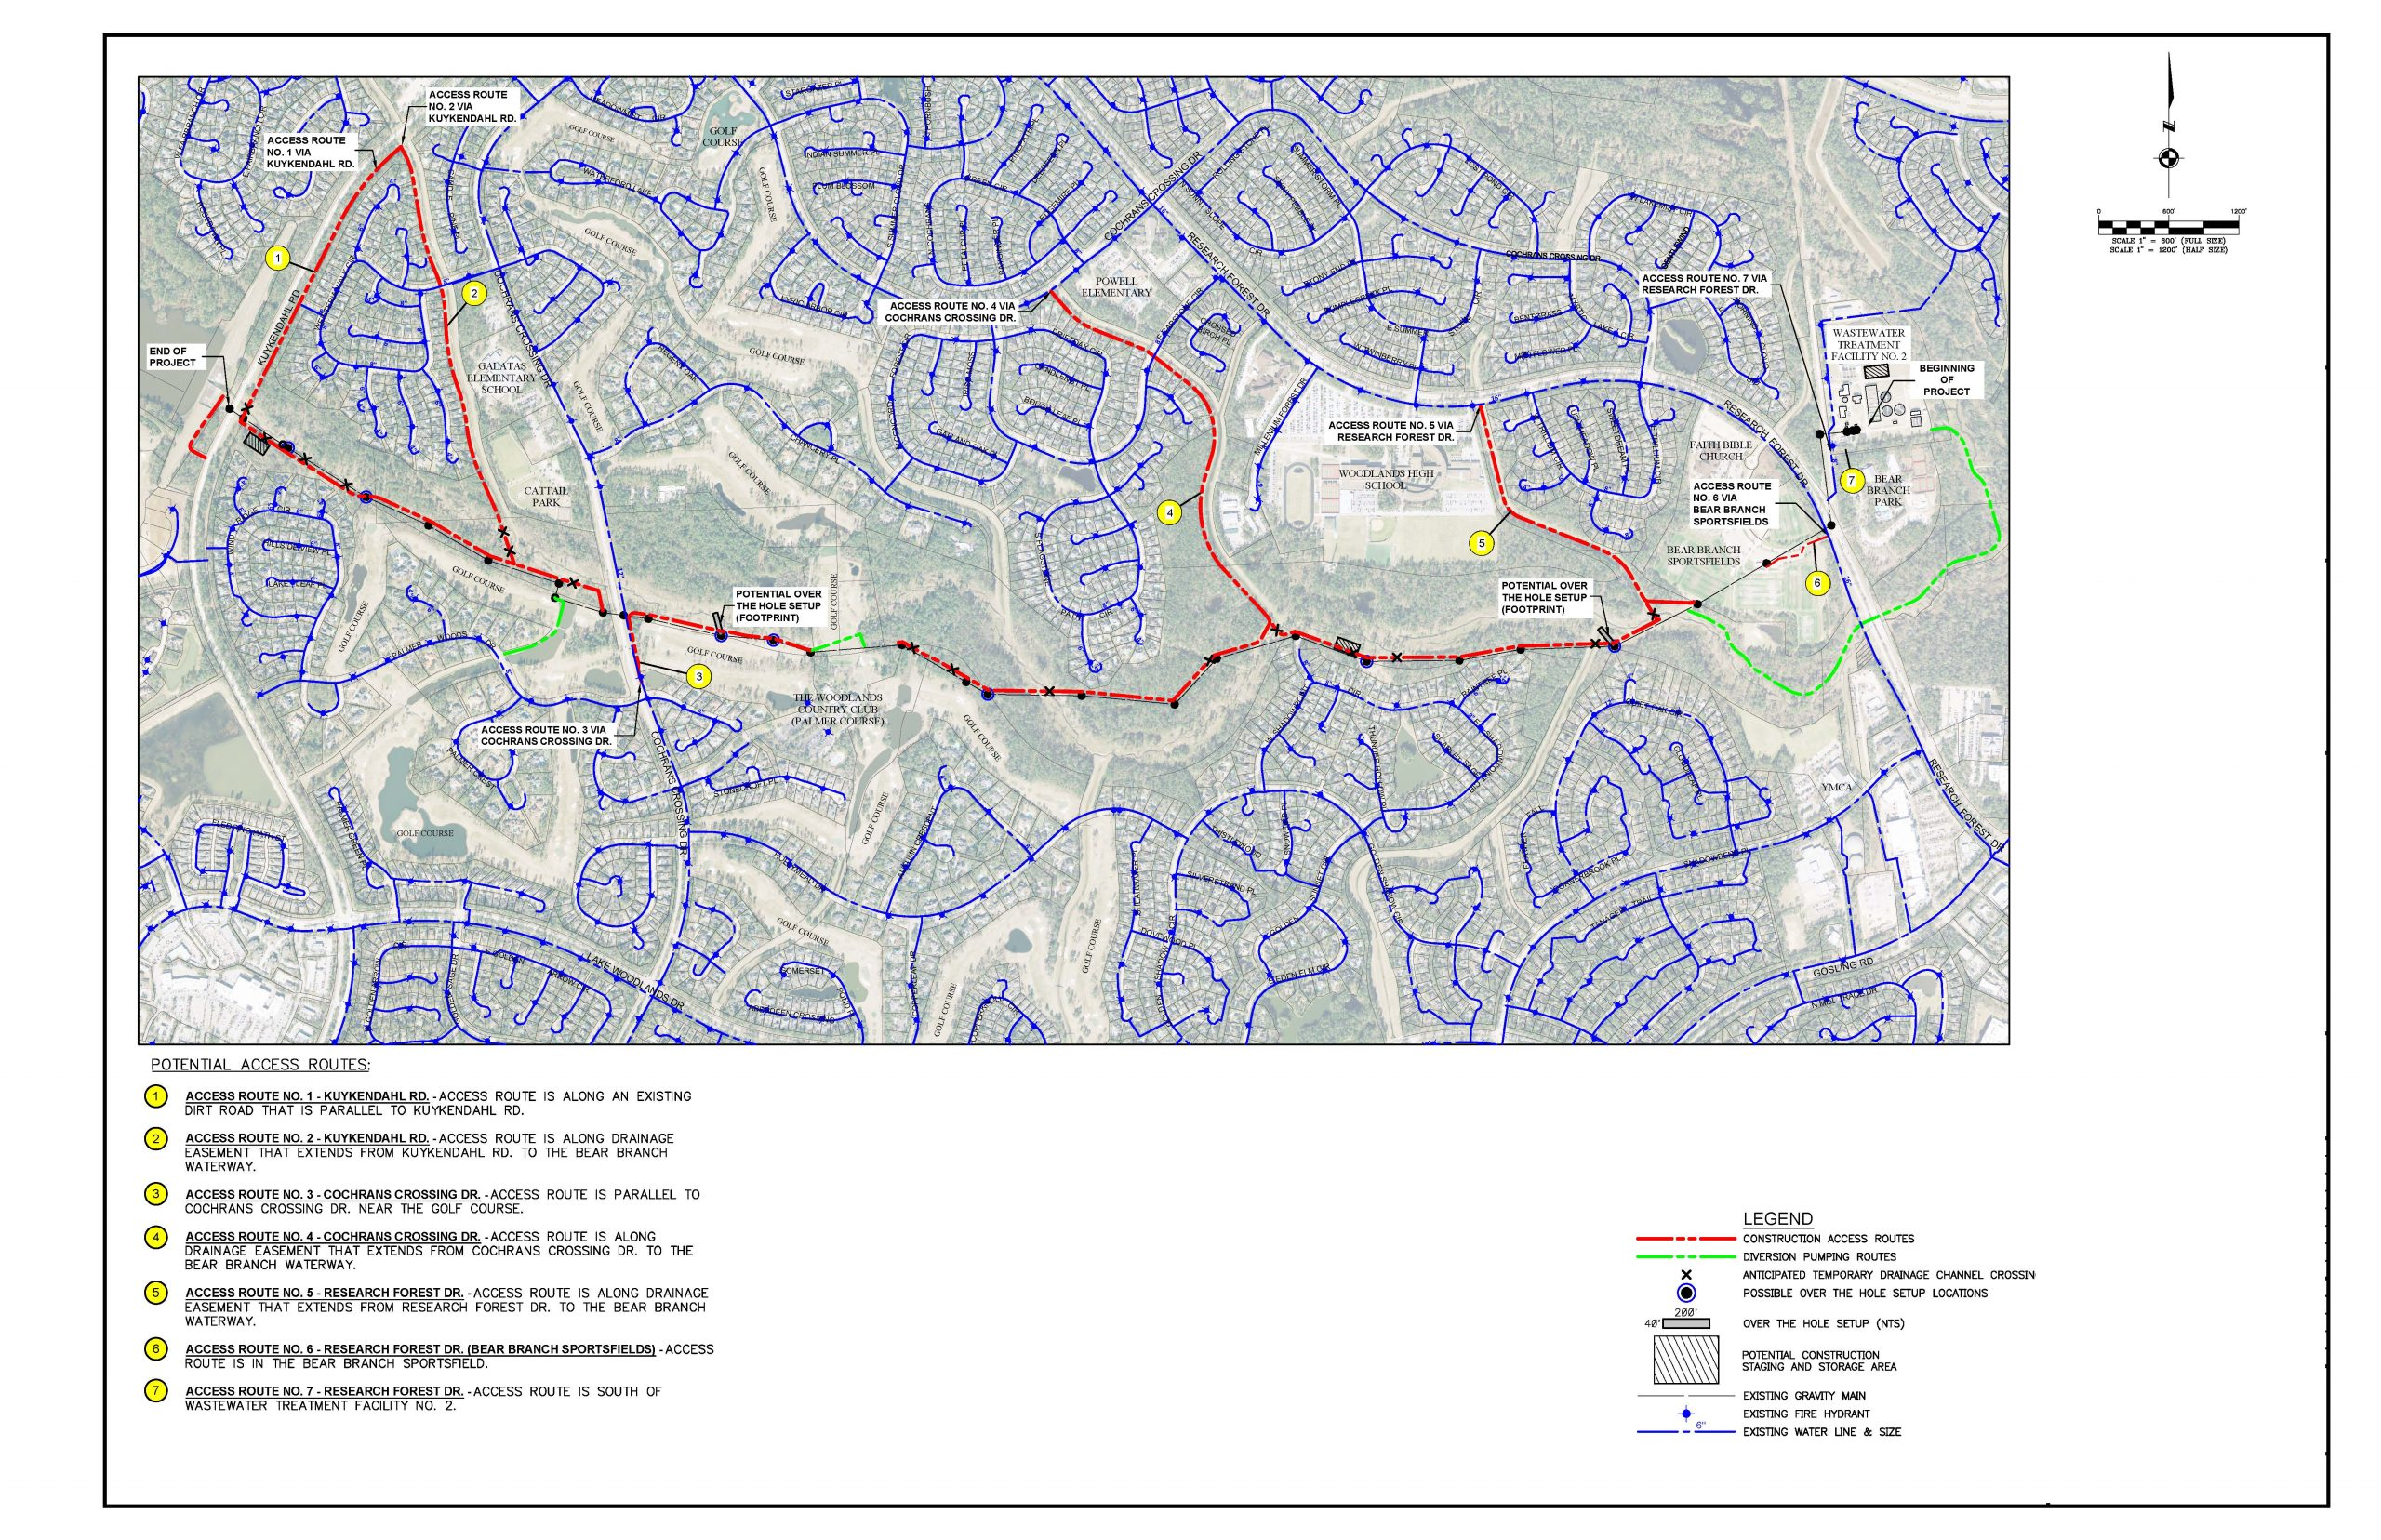 Rehabilitation of Bear Branch Gravity Main - Project Limits and Access Routes Map